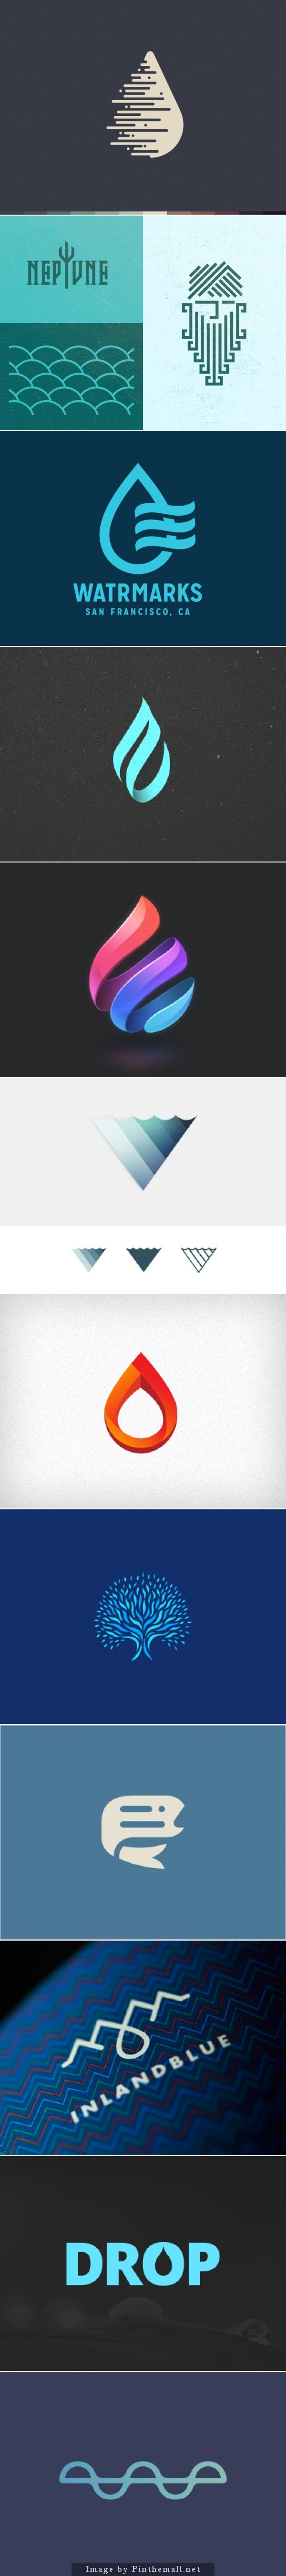 Beautiful Water Inspired Logos